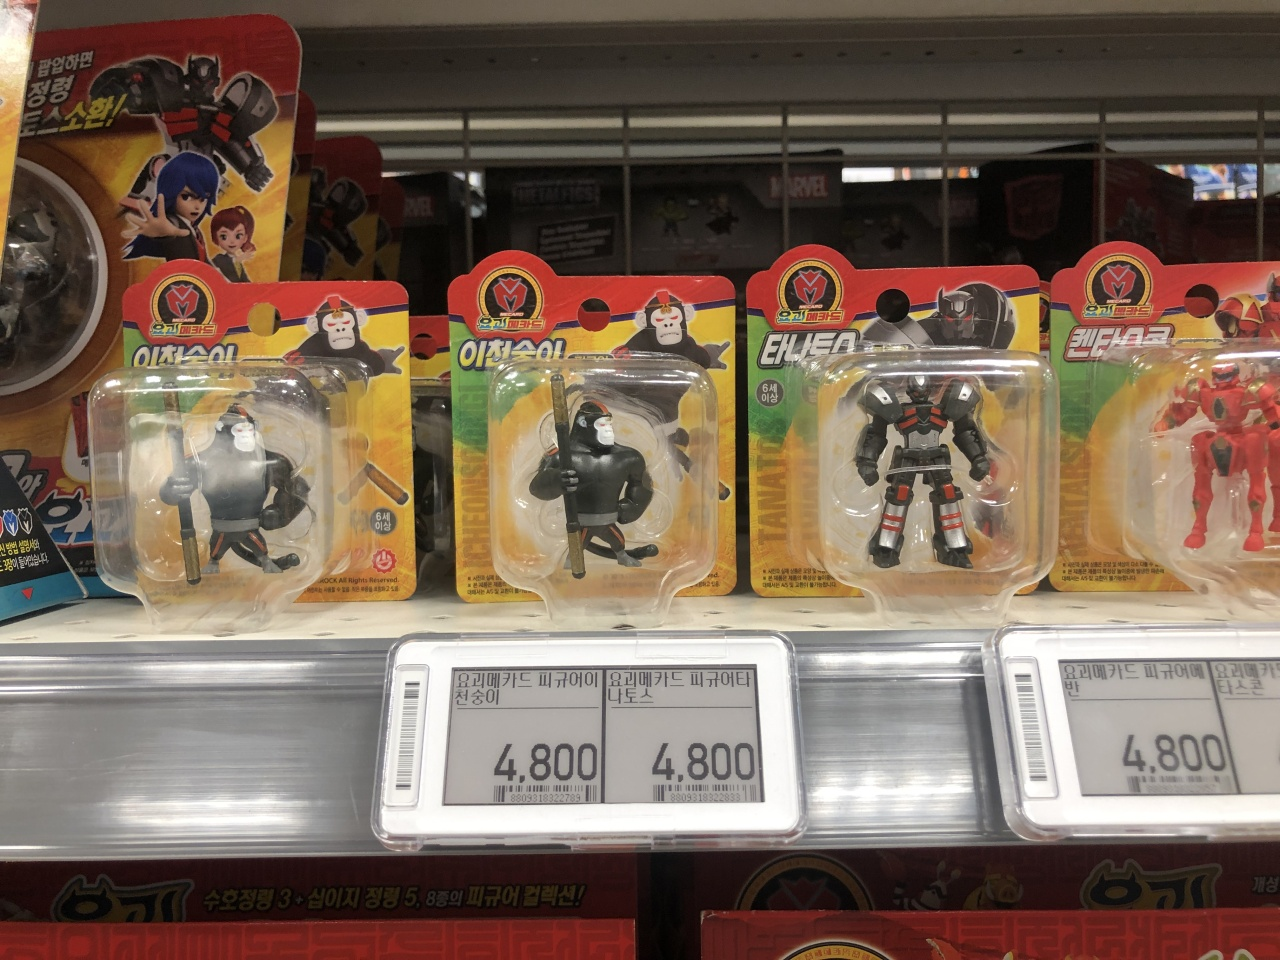 Sonokong's hit toy series Turning Mecard displayed at a discount chain store in Seoul. (Kim Da-sol/The Korea Herald)